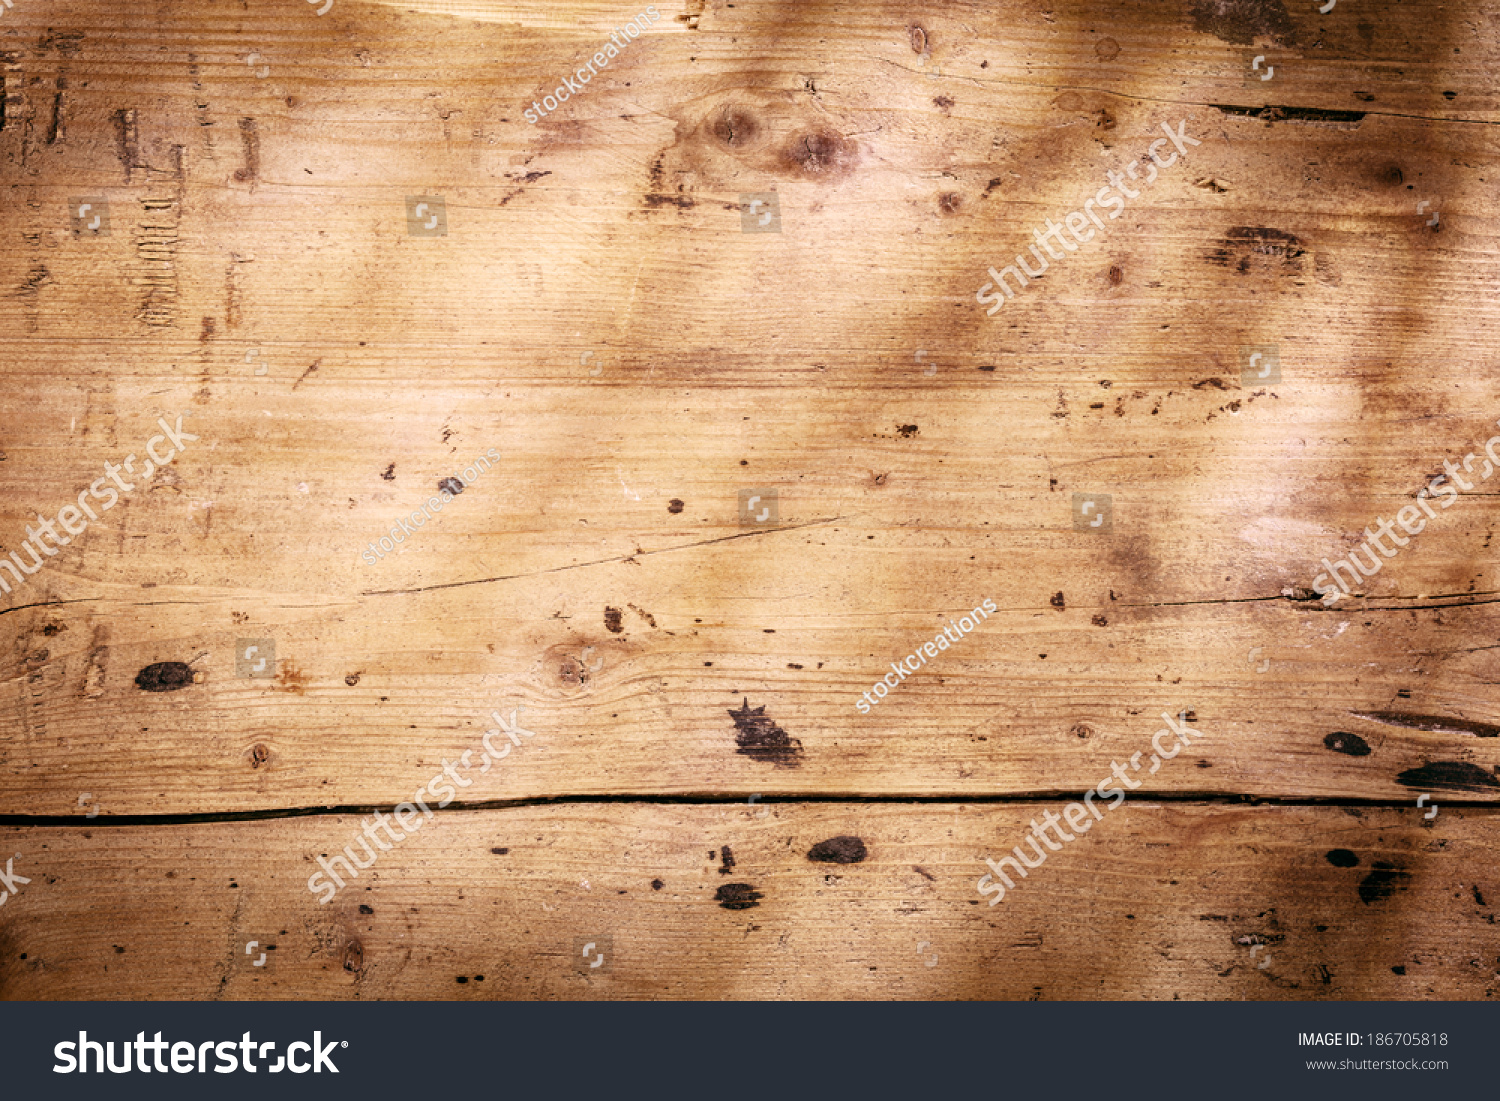 Worn Down Wooden Planks ~ Vintage wooden background texture worn smooth stock photo